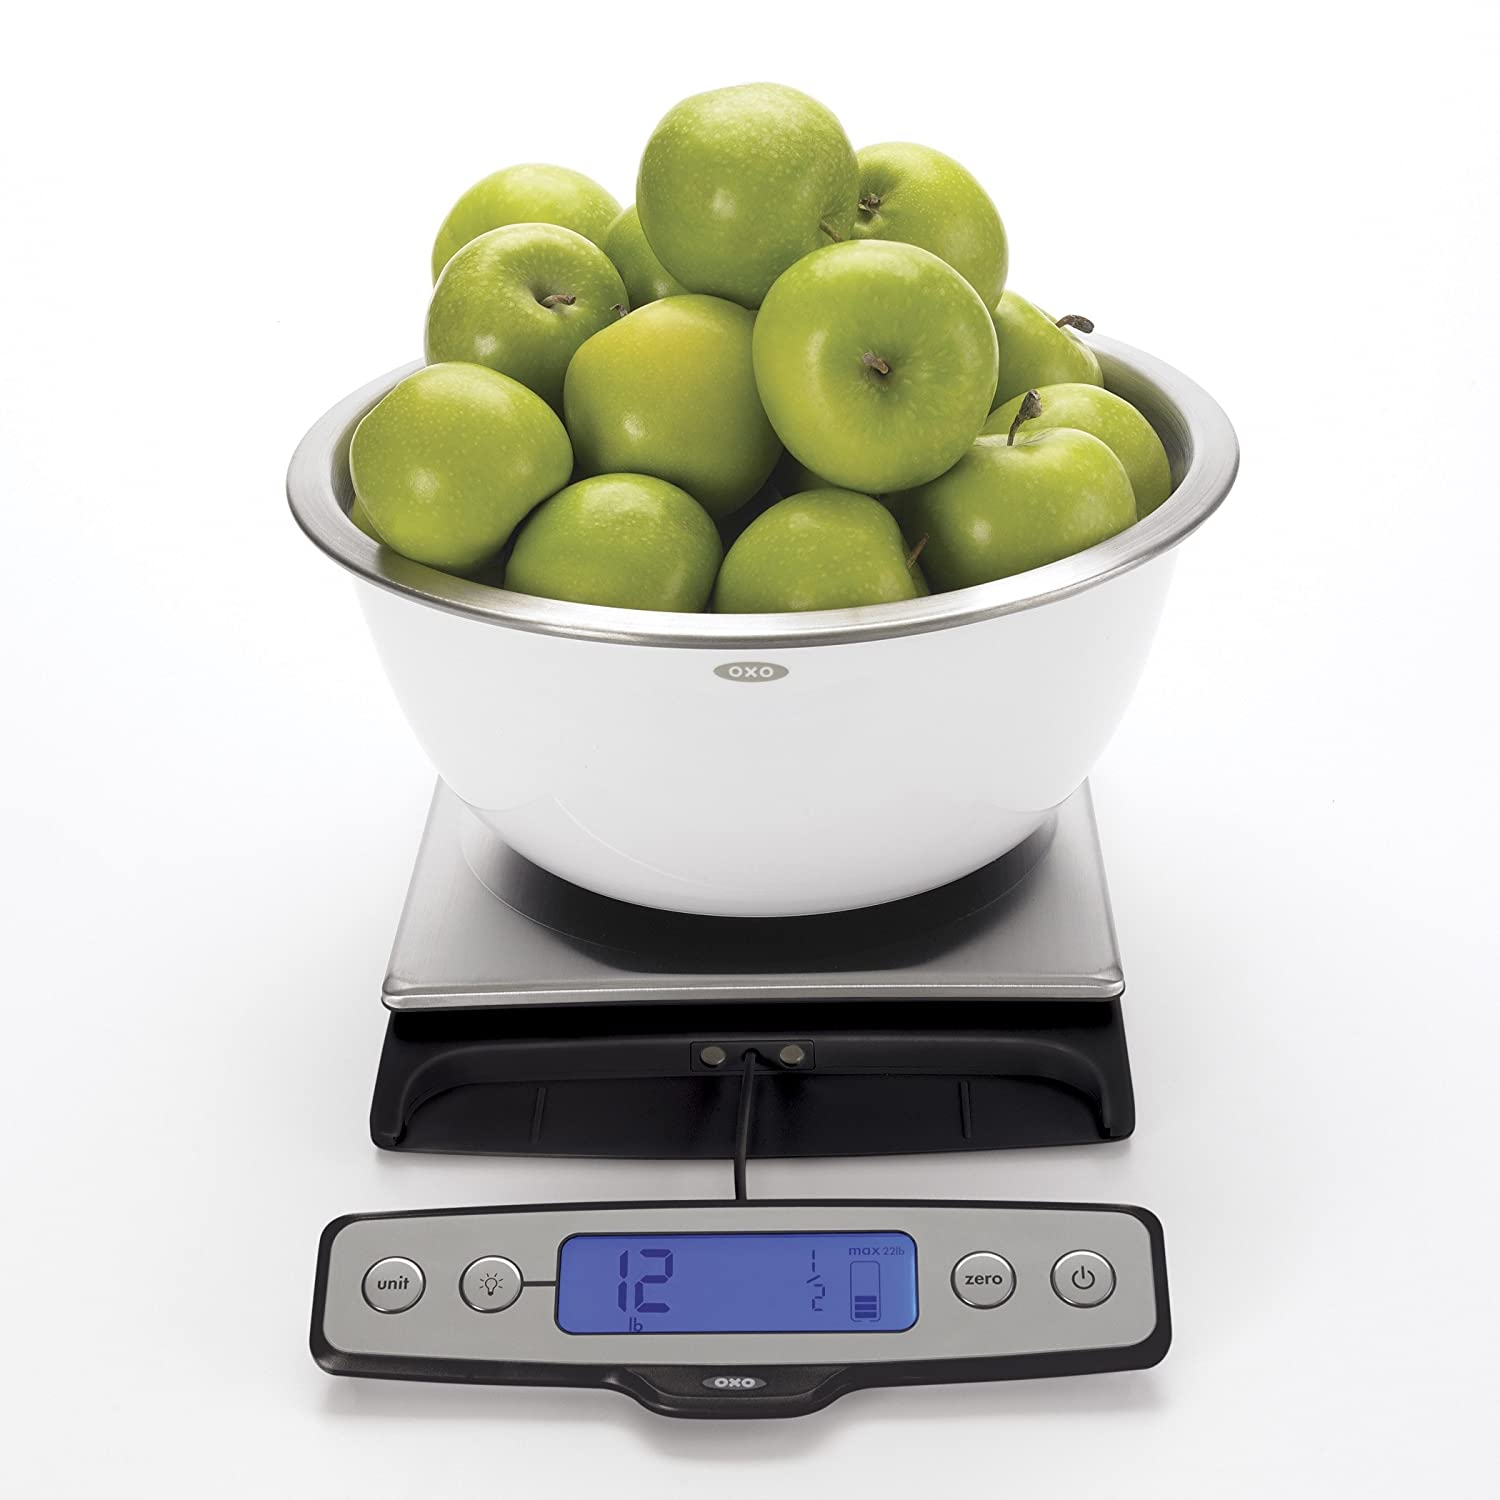 OXO Good Grips Stainless Steel Food Scale with Pull Out Display, 22-Pound OXO Cook's Tools 1128380